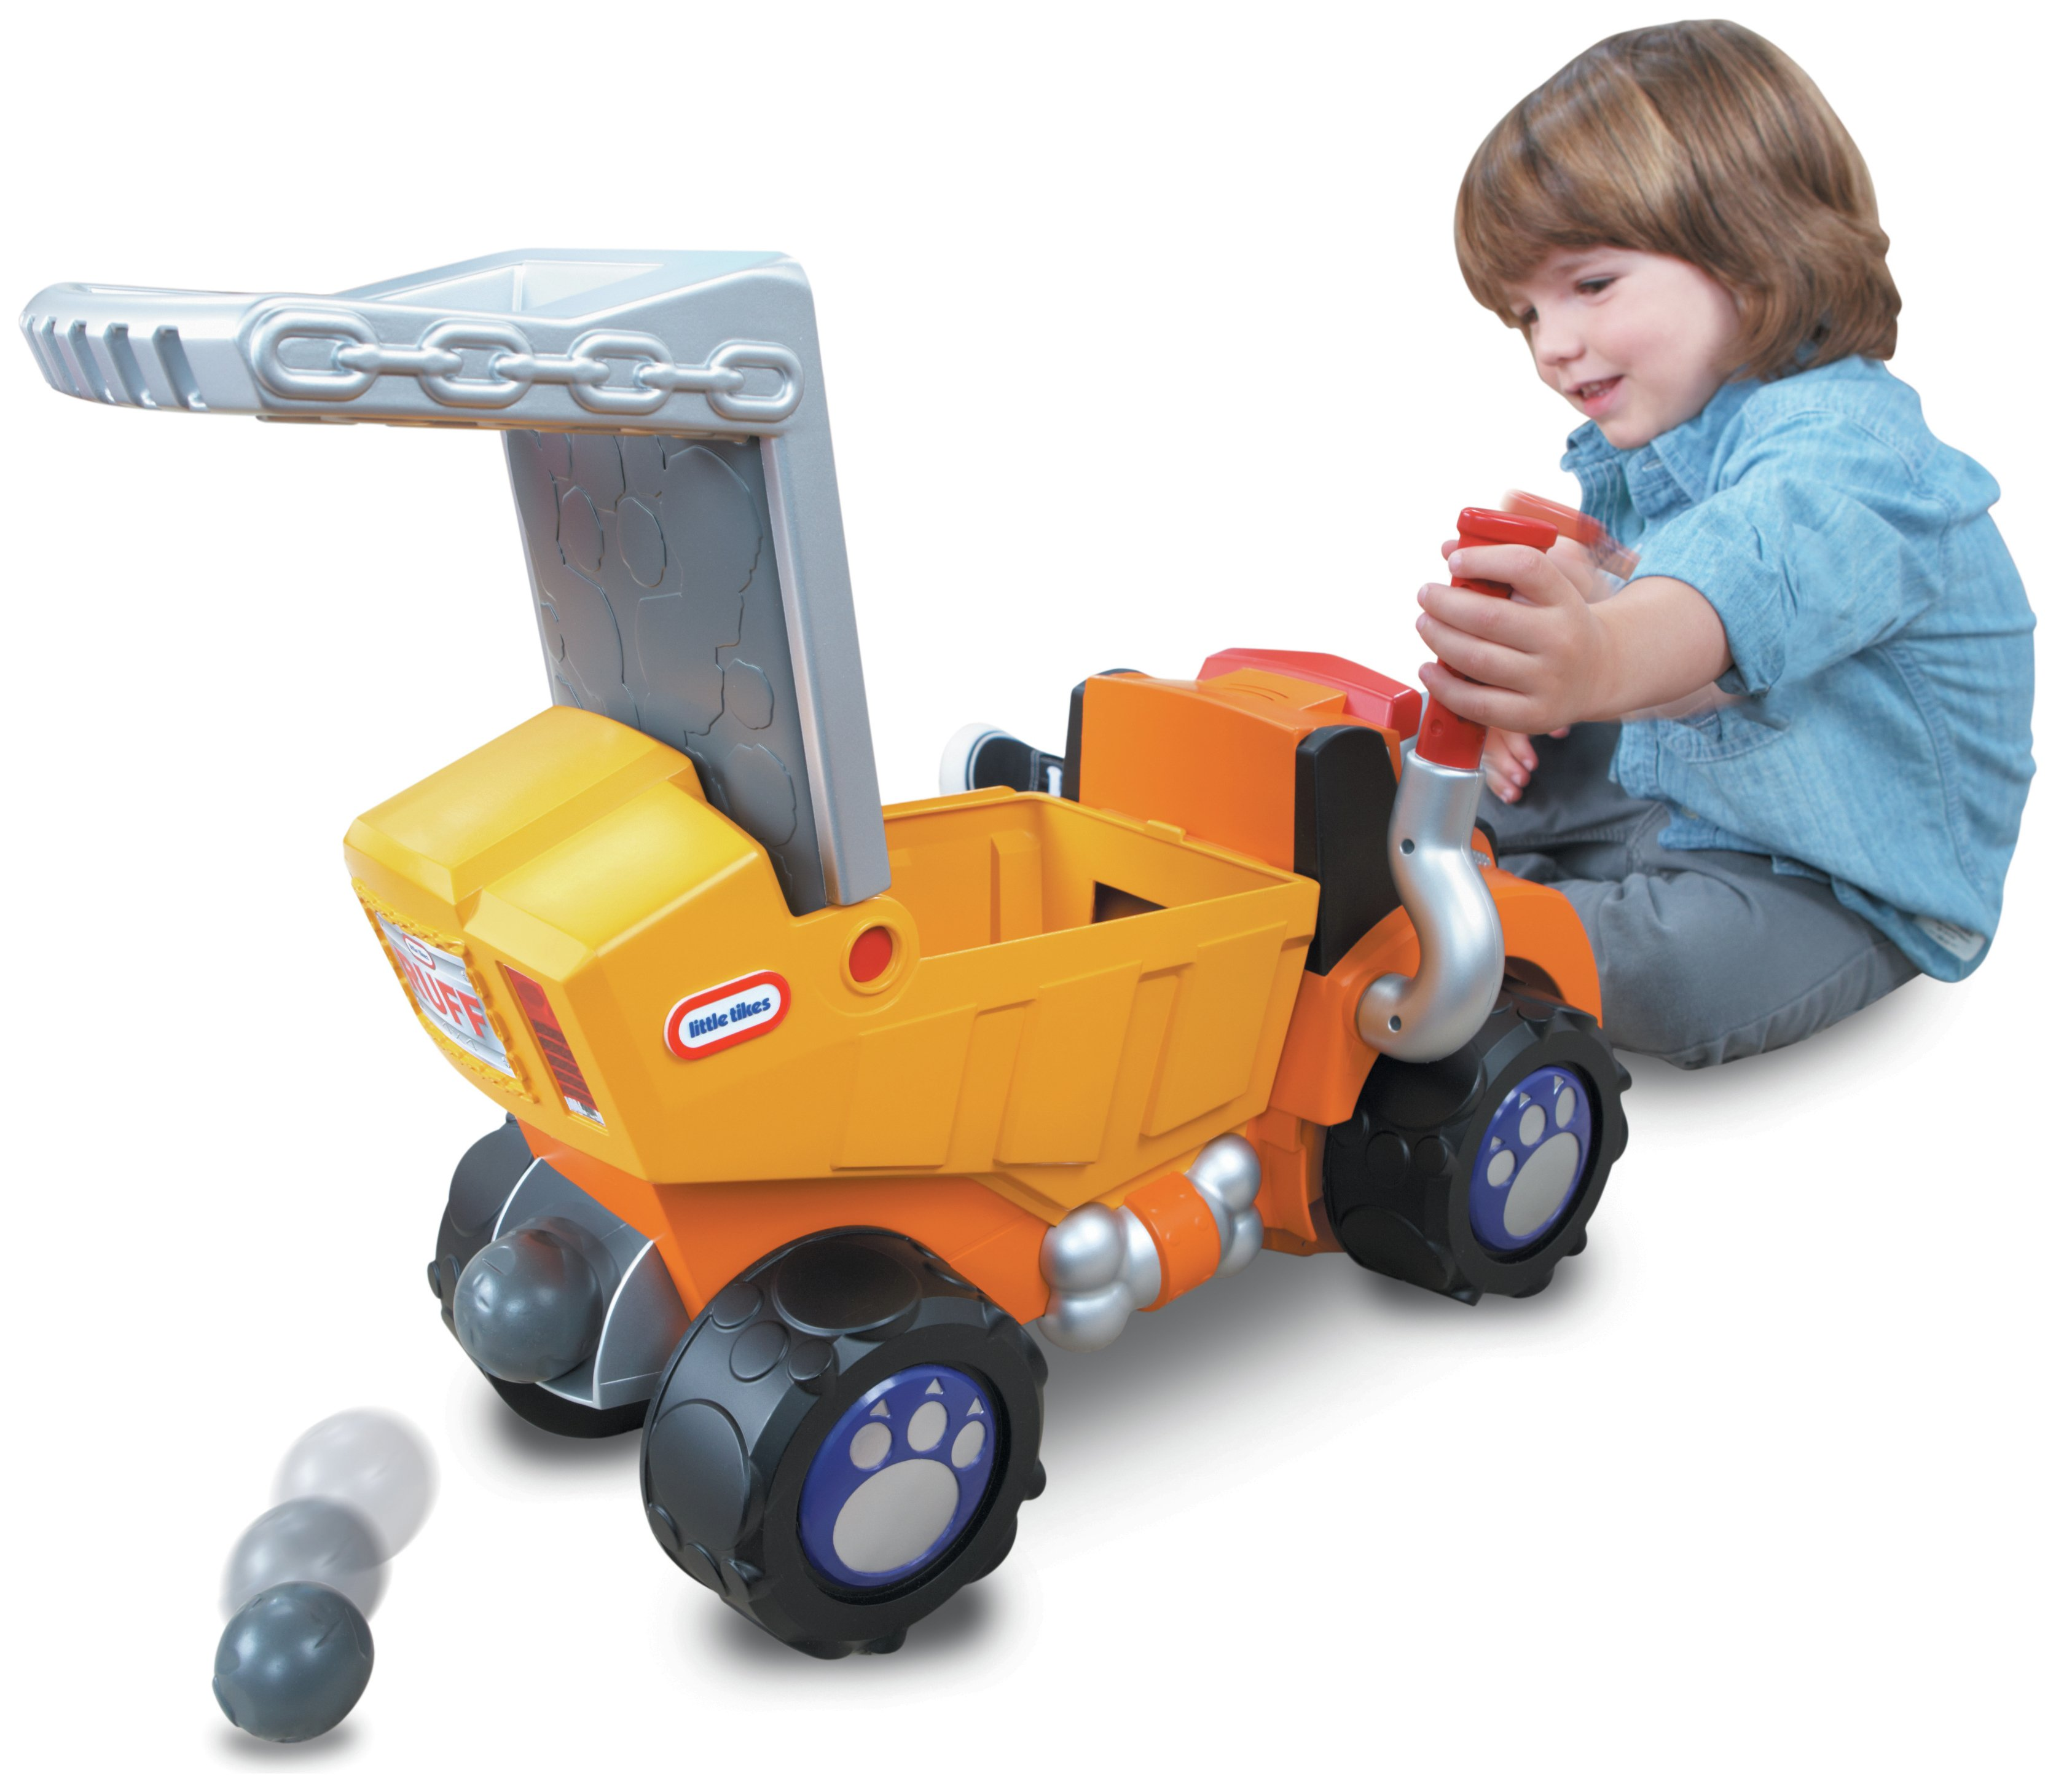 Product Description. The Little Tikes Endless Adventures Tikes Town playcenter is an indoor and outdoor club house with endless role play activities.